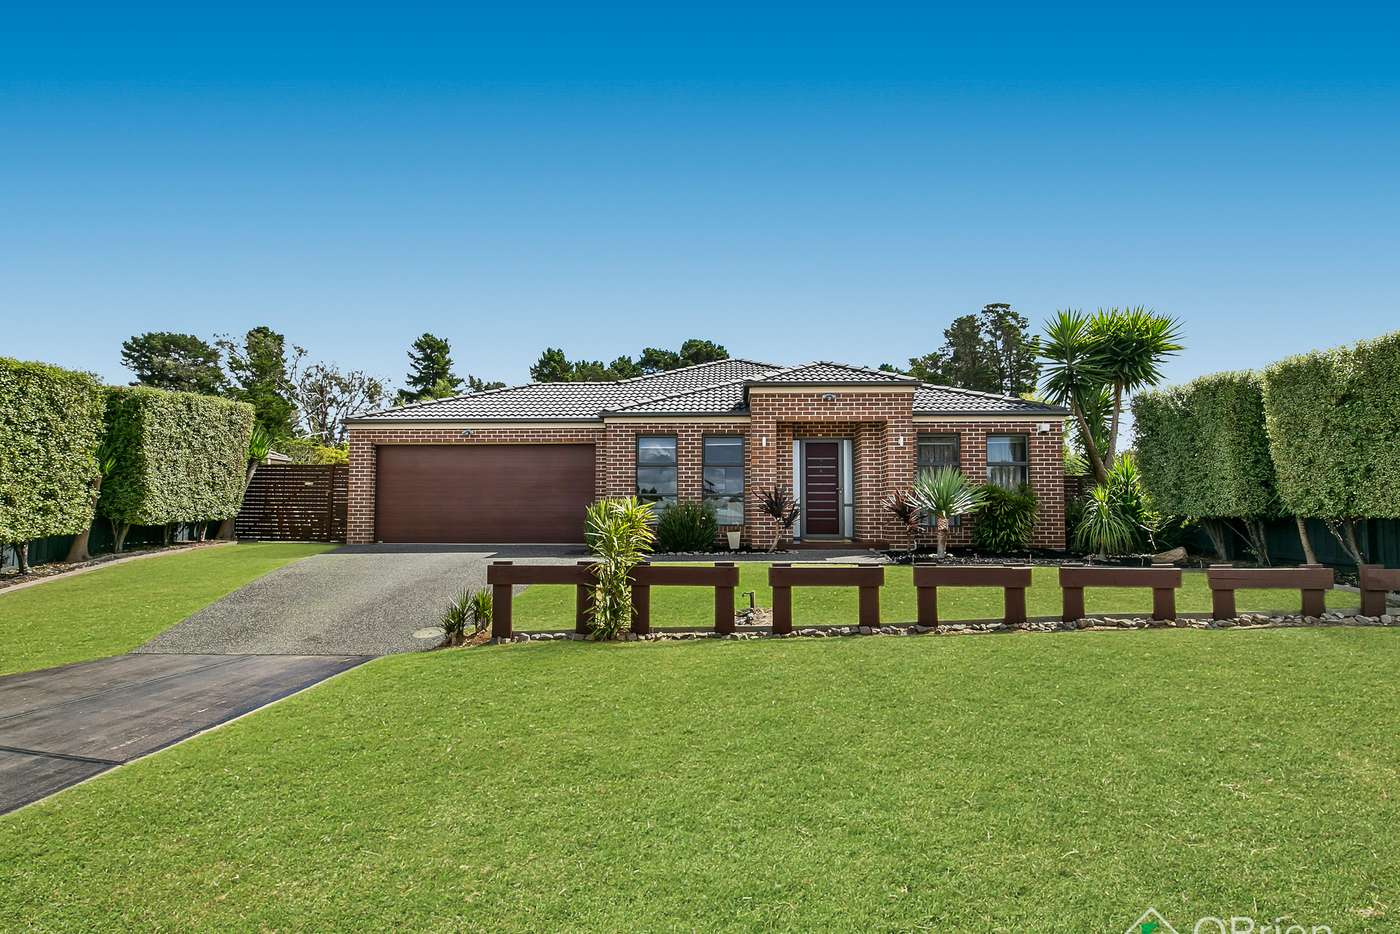 Main view of Homely house listing, 8 Andrew Court, Hastings VIC 3915